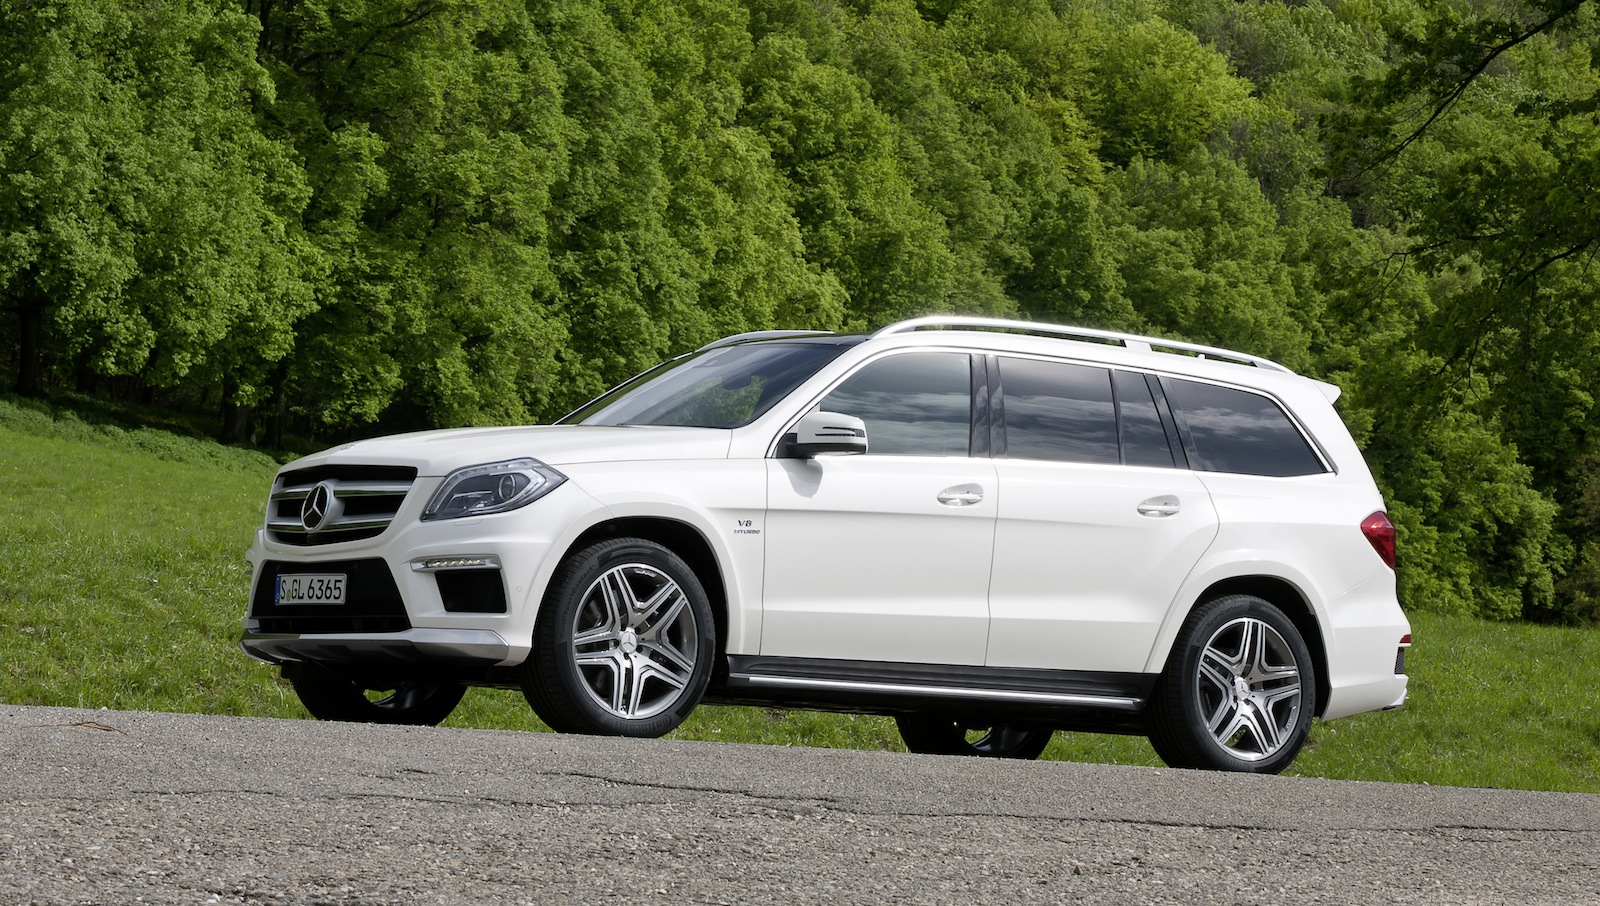 Mercedes Benz Gl63 Amg Full Size Suv Goes Hardcore